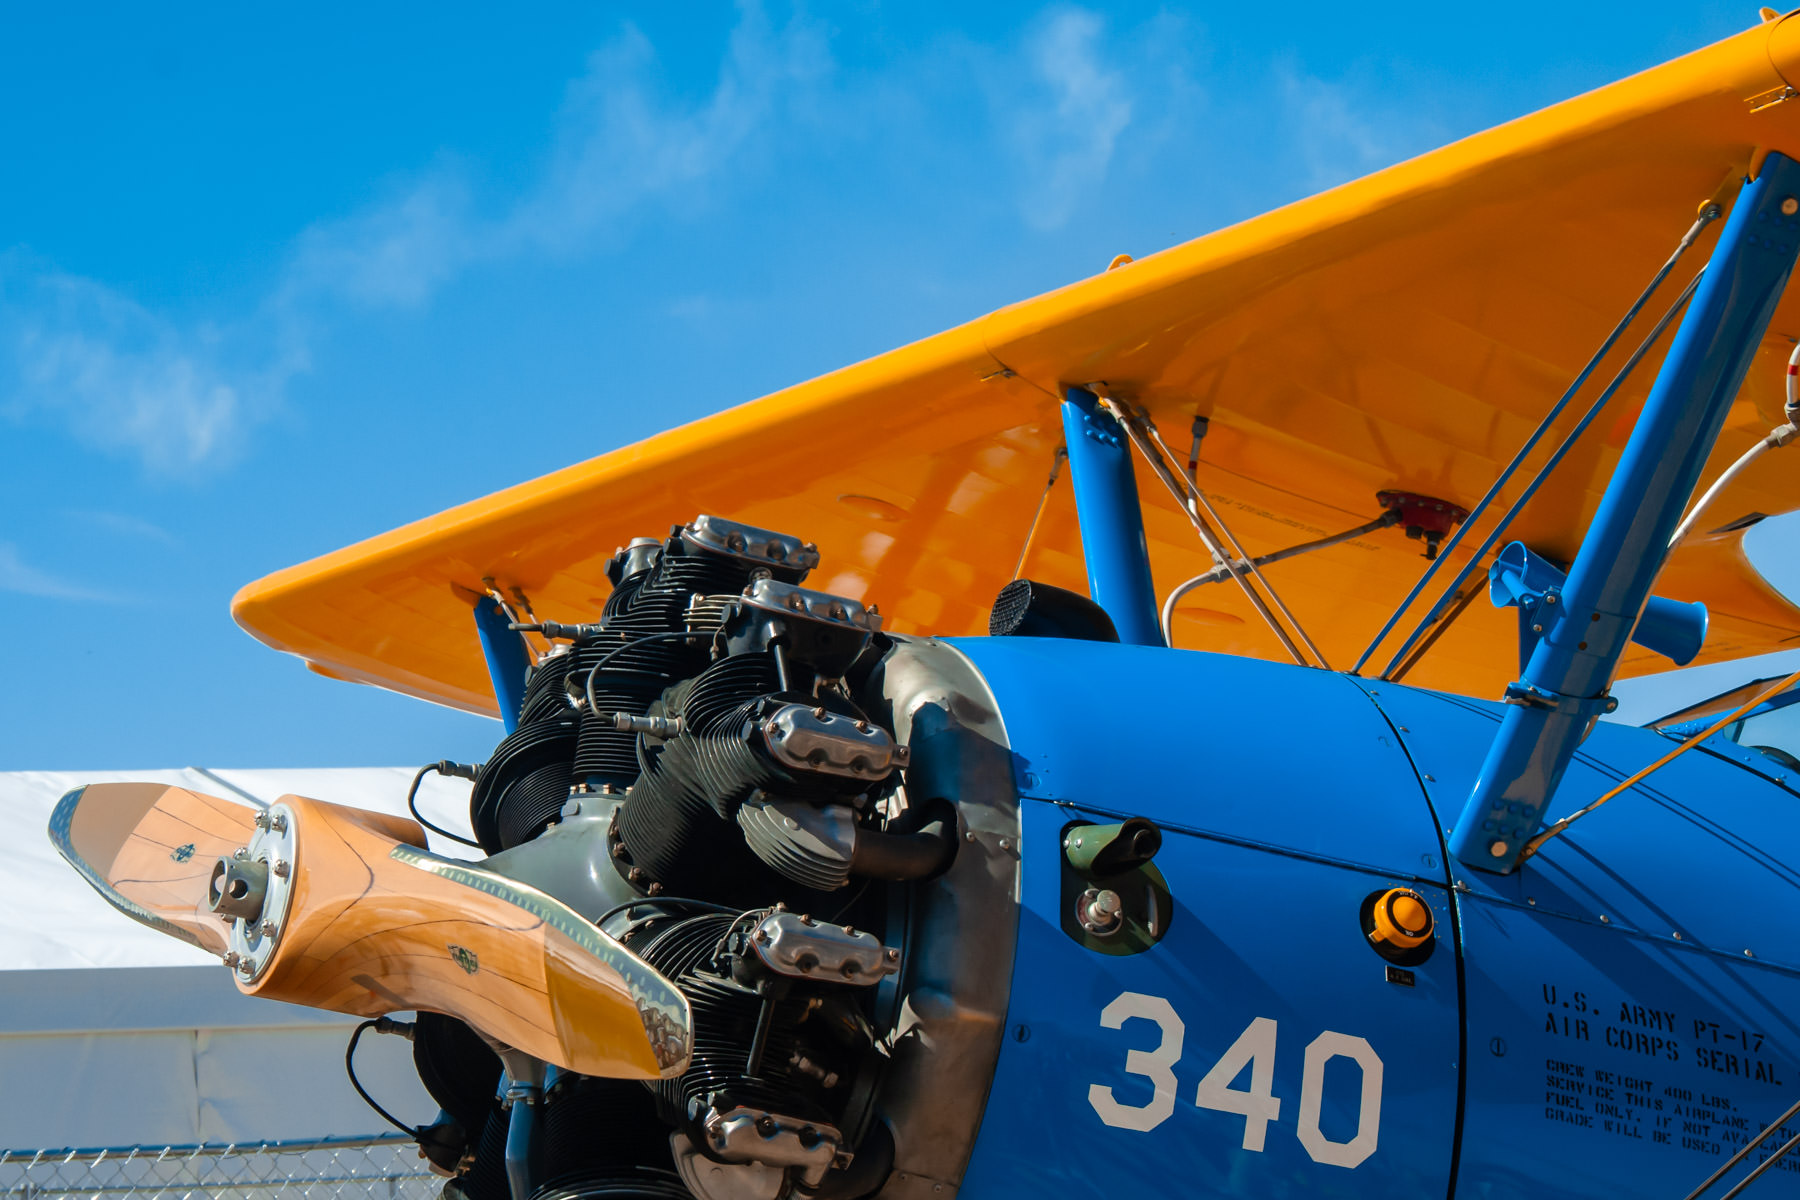 Detail of a Stearman PT-17, spotted at the Alliance Air Show, Fort Worth, Texas.